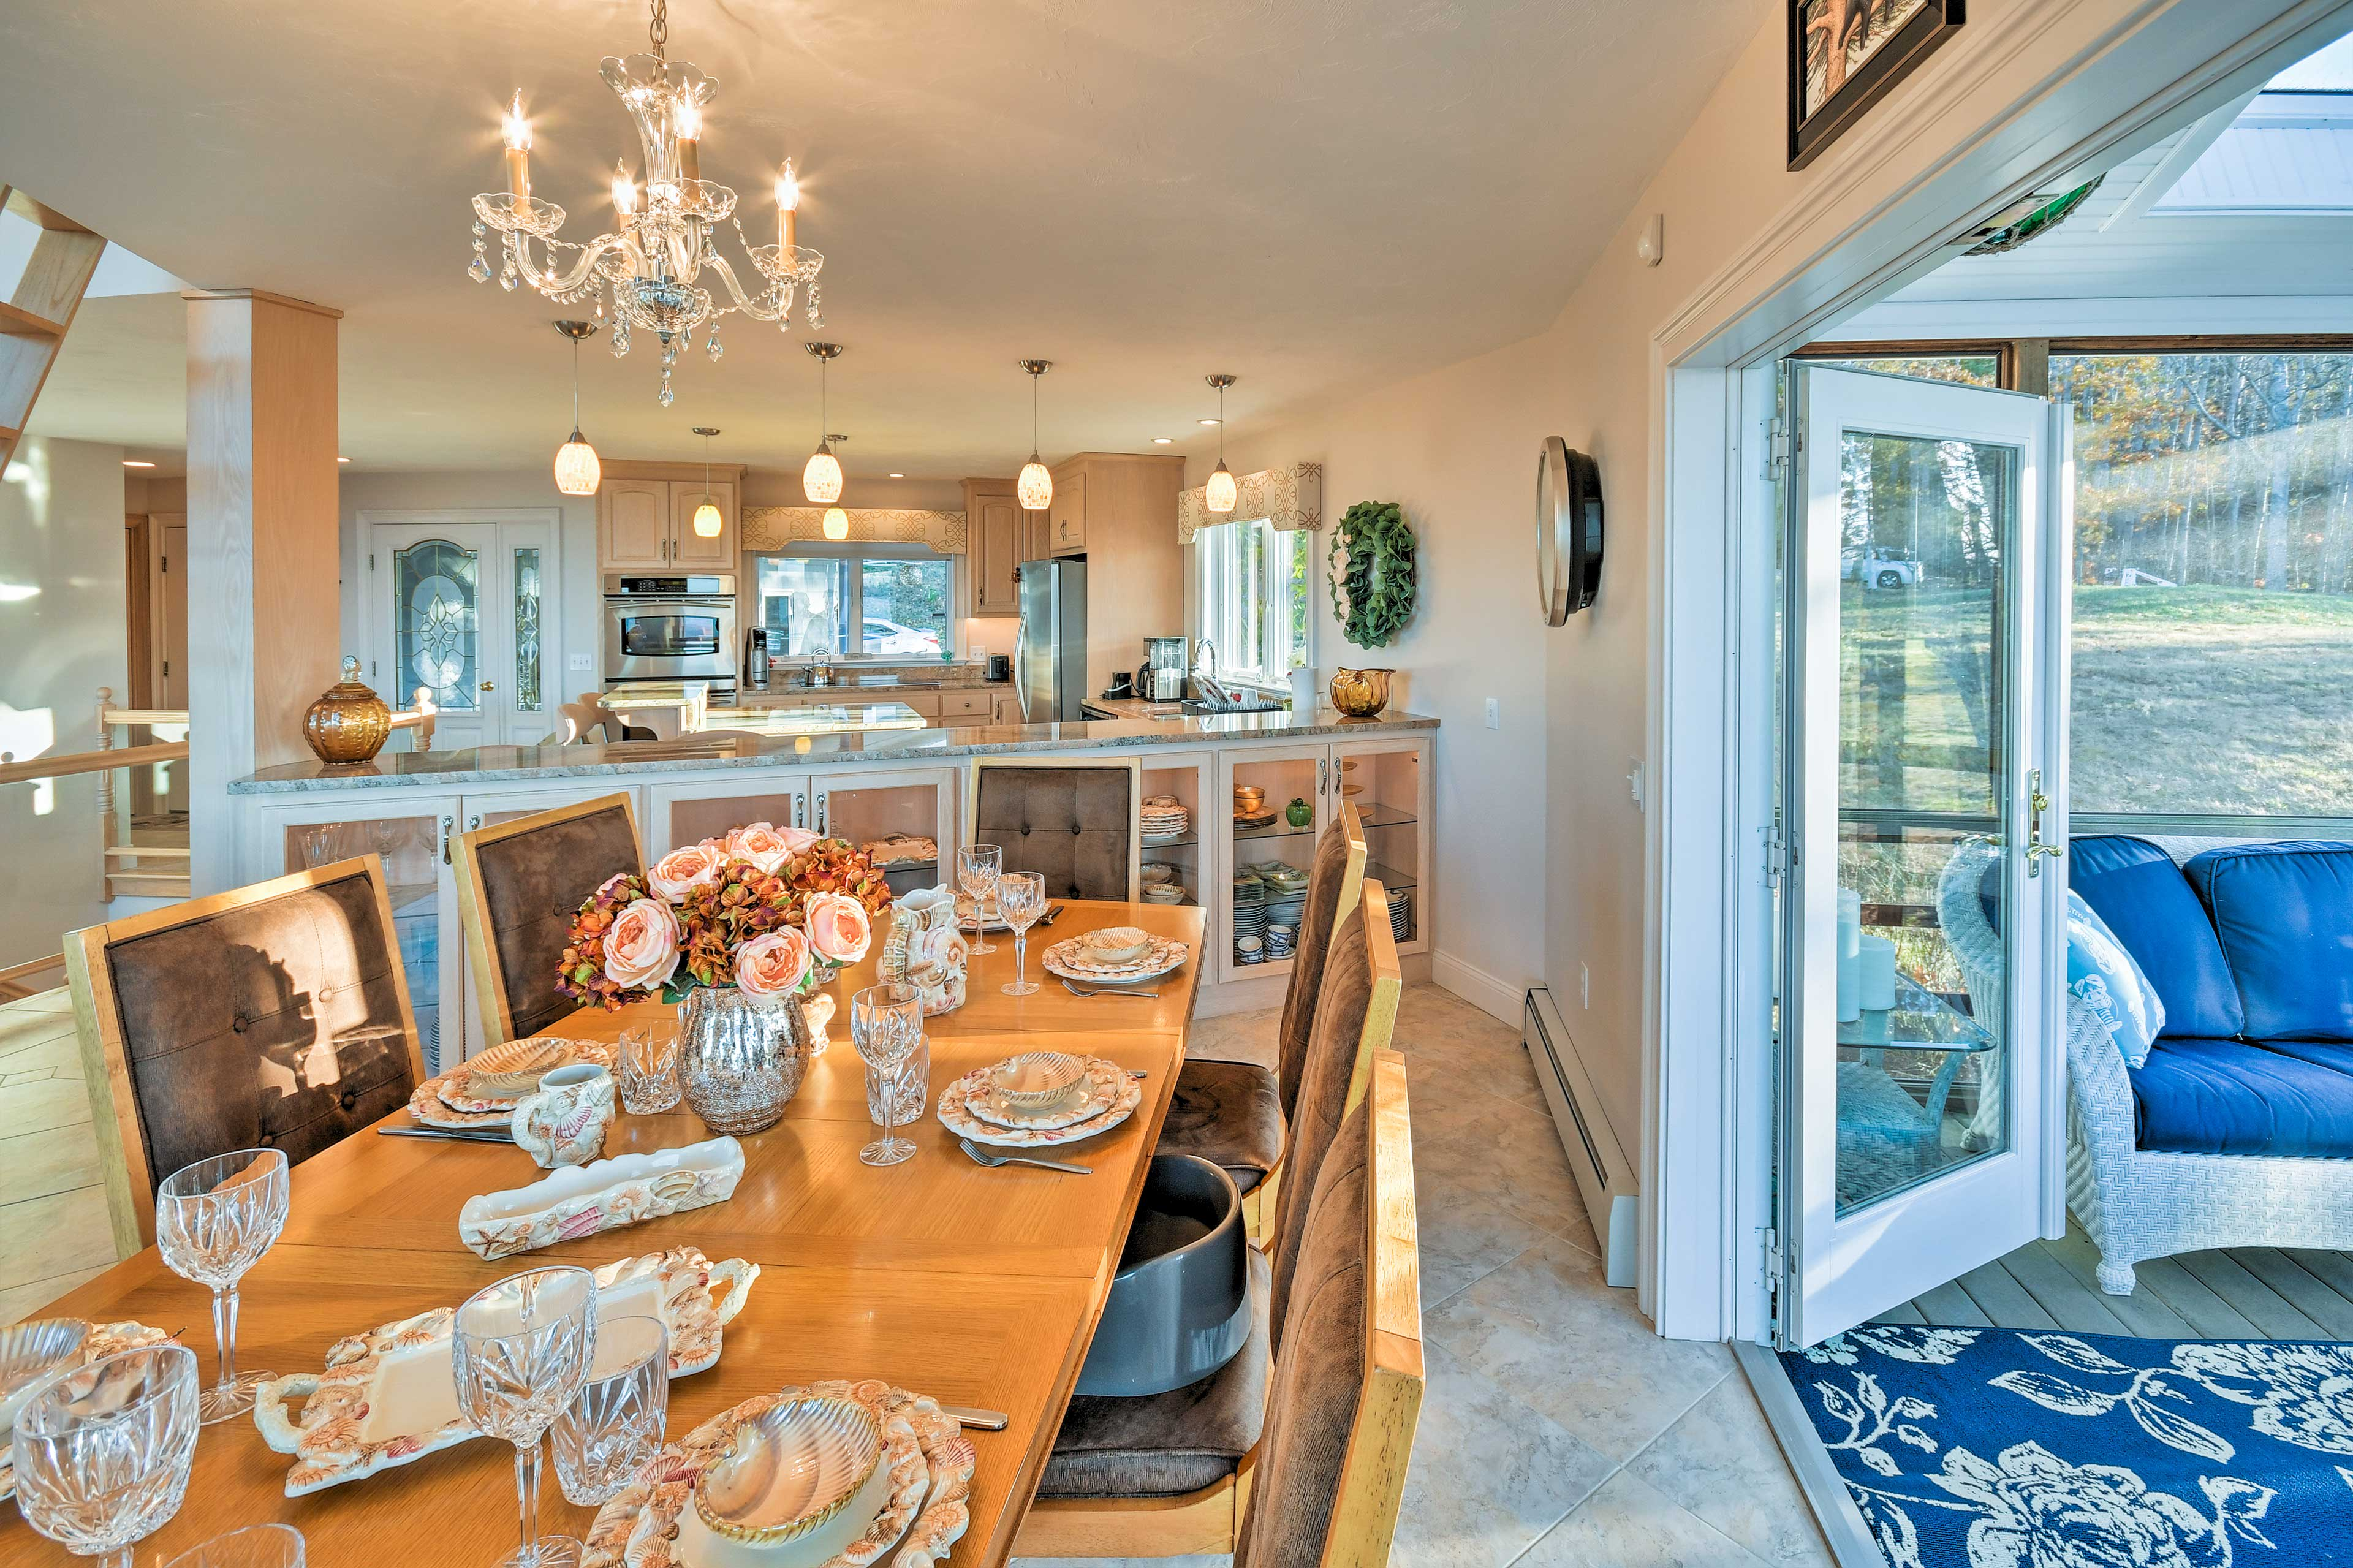 Treat the family to a world-class feast around the 8-person dining table.